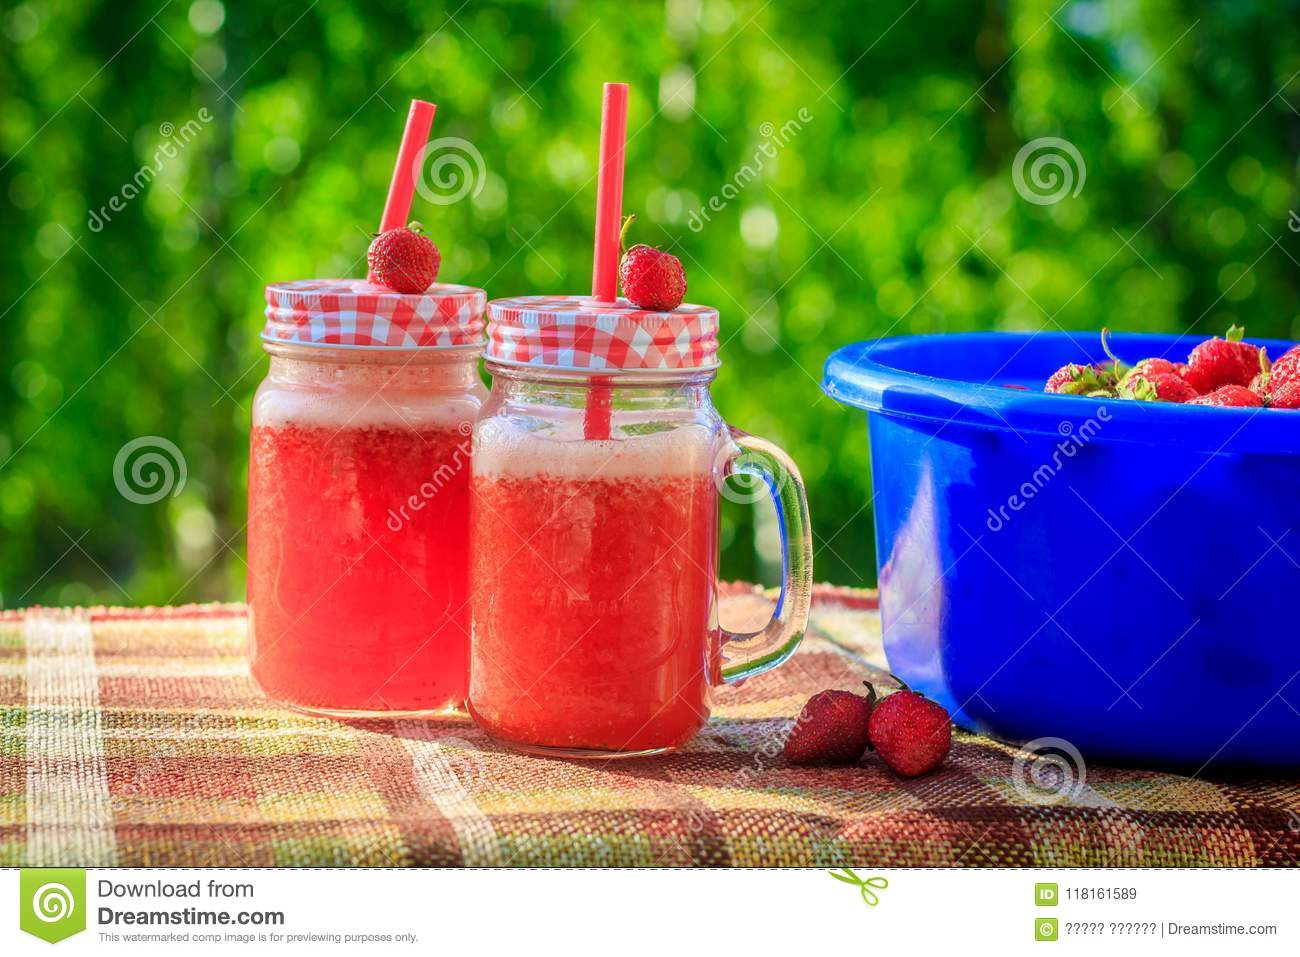 Summer refreshing drink homemade lemonade with strawberries in glasses with a straw